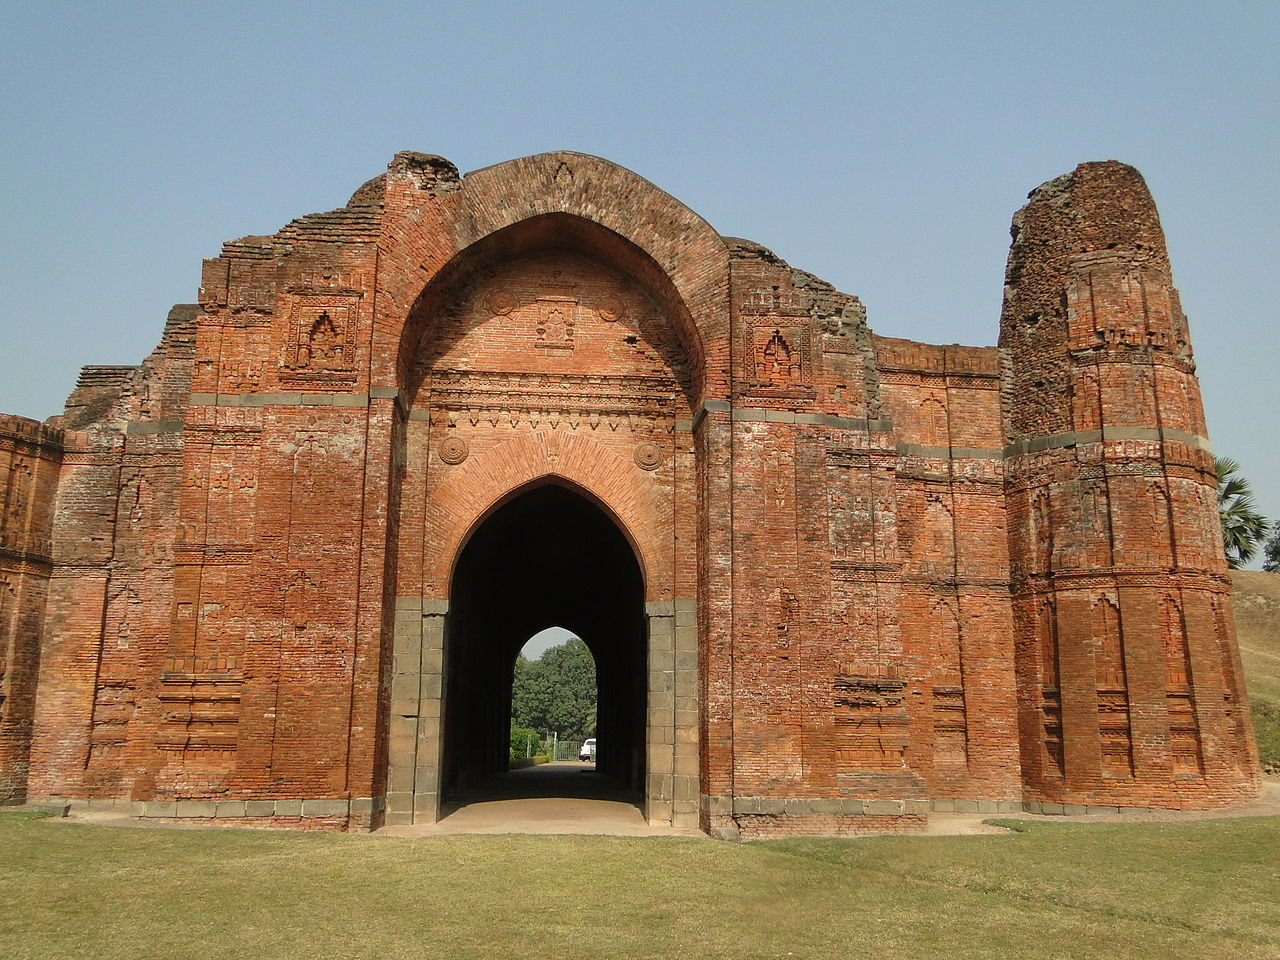 Gour - Place in Malda That Every Tourist Must See